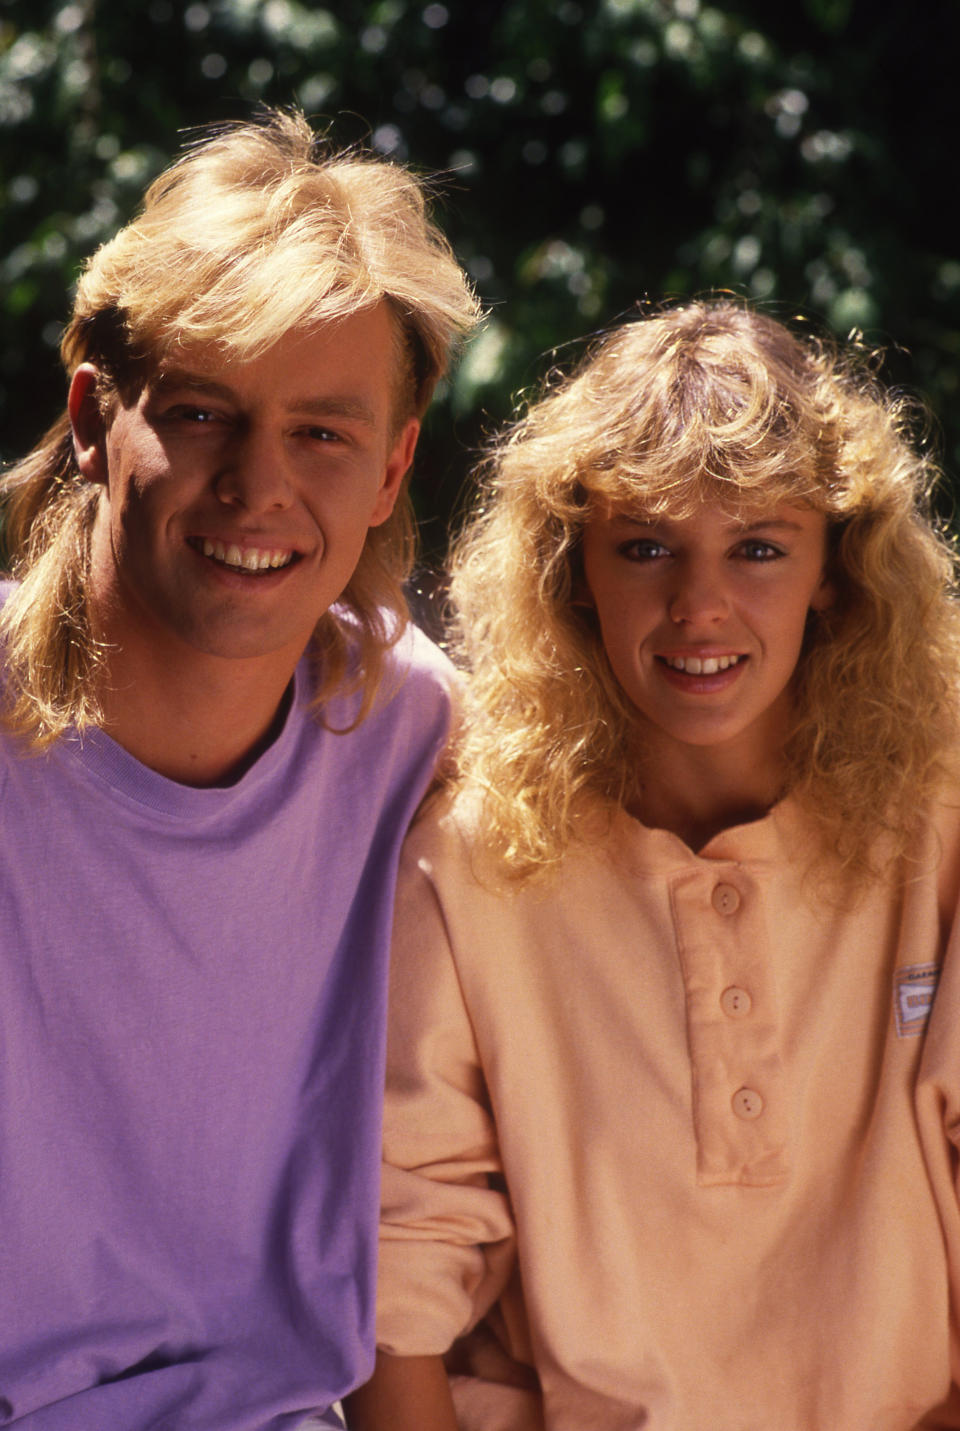 Neighbours star Jason Donovan has revealed he was once stoned while filming an episode of the show, revealing it was a 'disaster'. Photo: Impressions/Getty Images